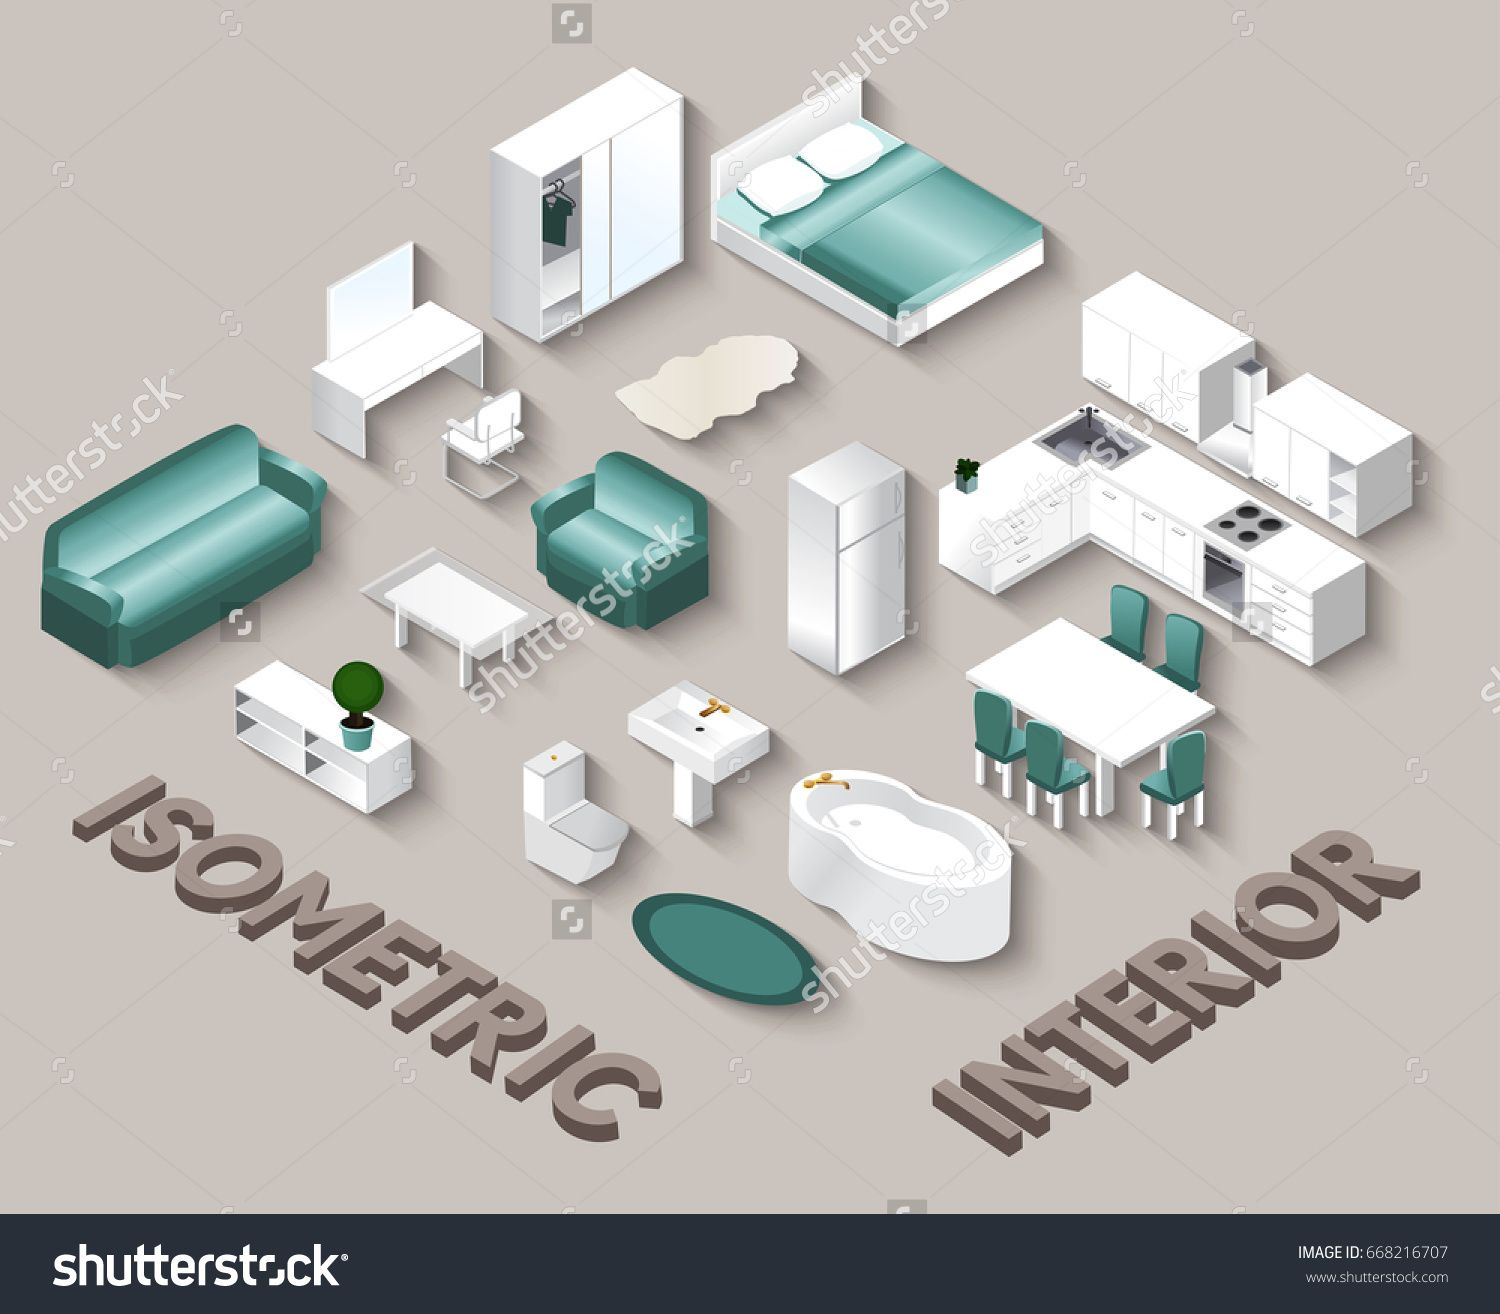 Isometric Interior view. Set of isolated domestic